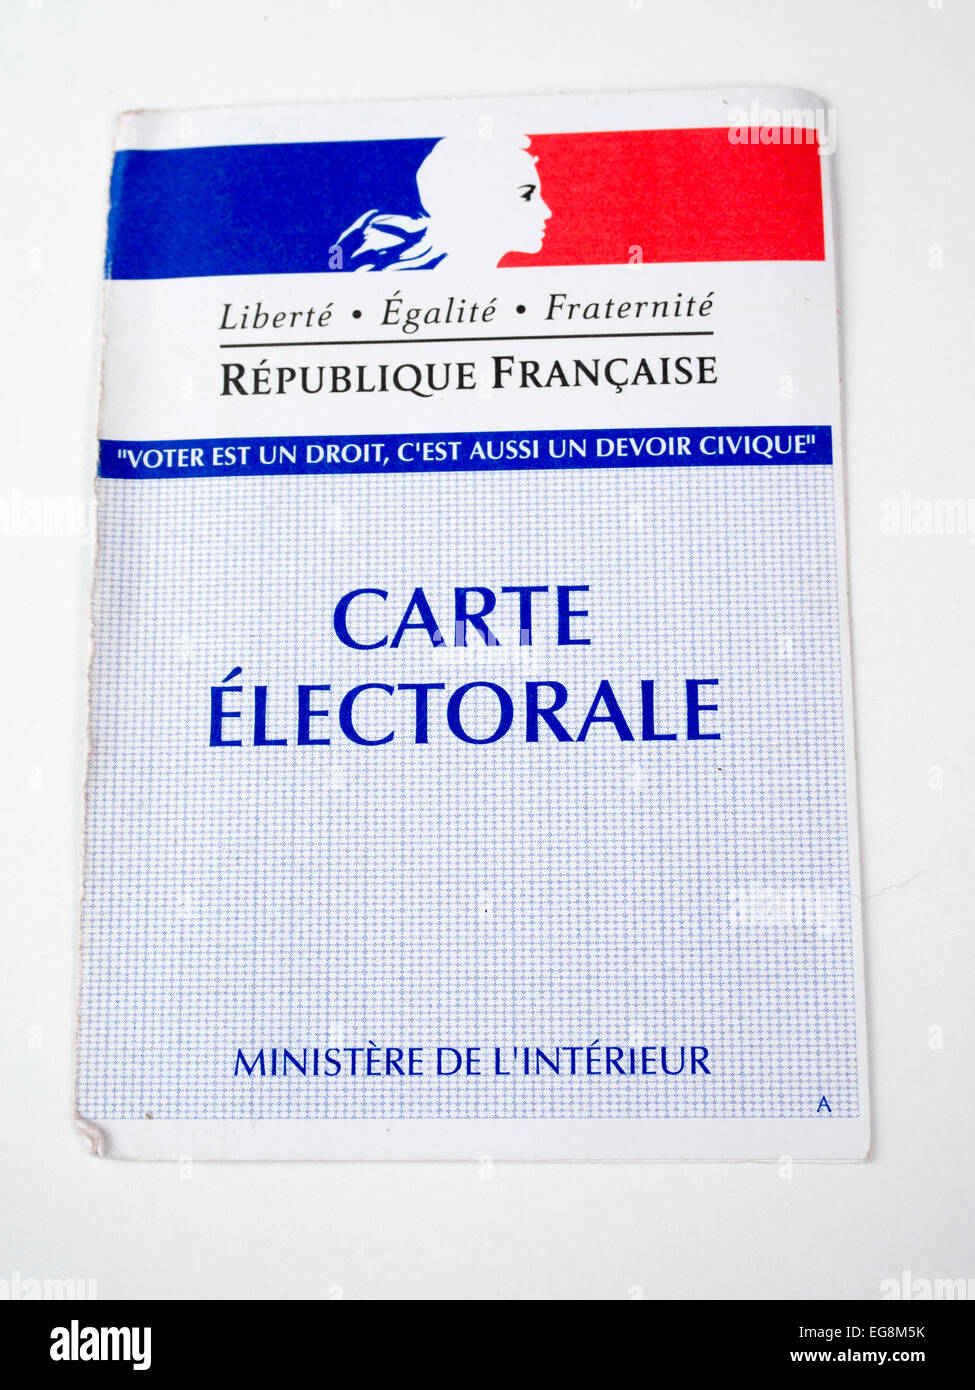 electoral card, vote, vote, France , freedom, equality